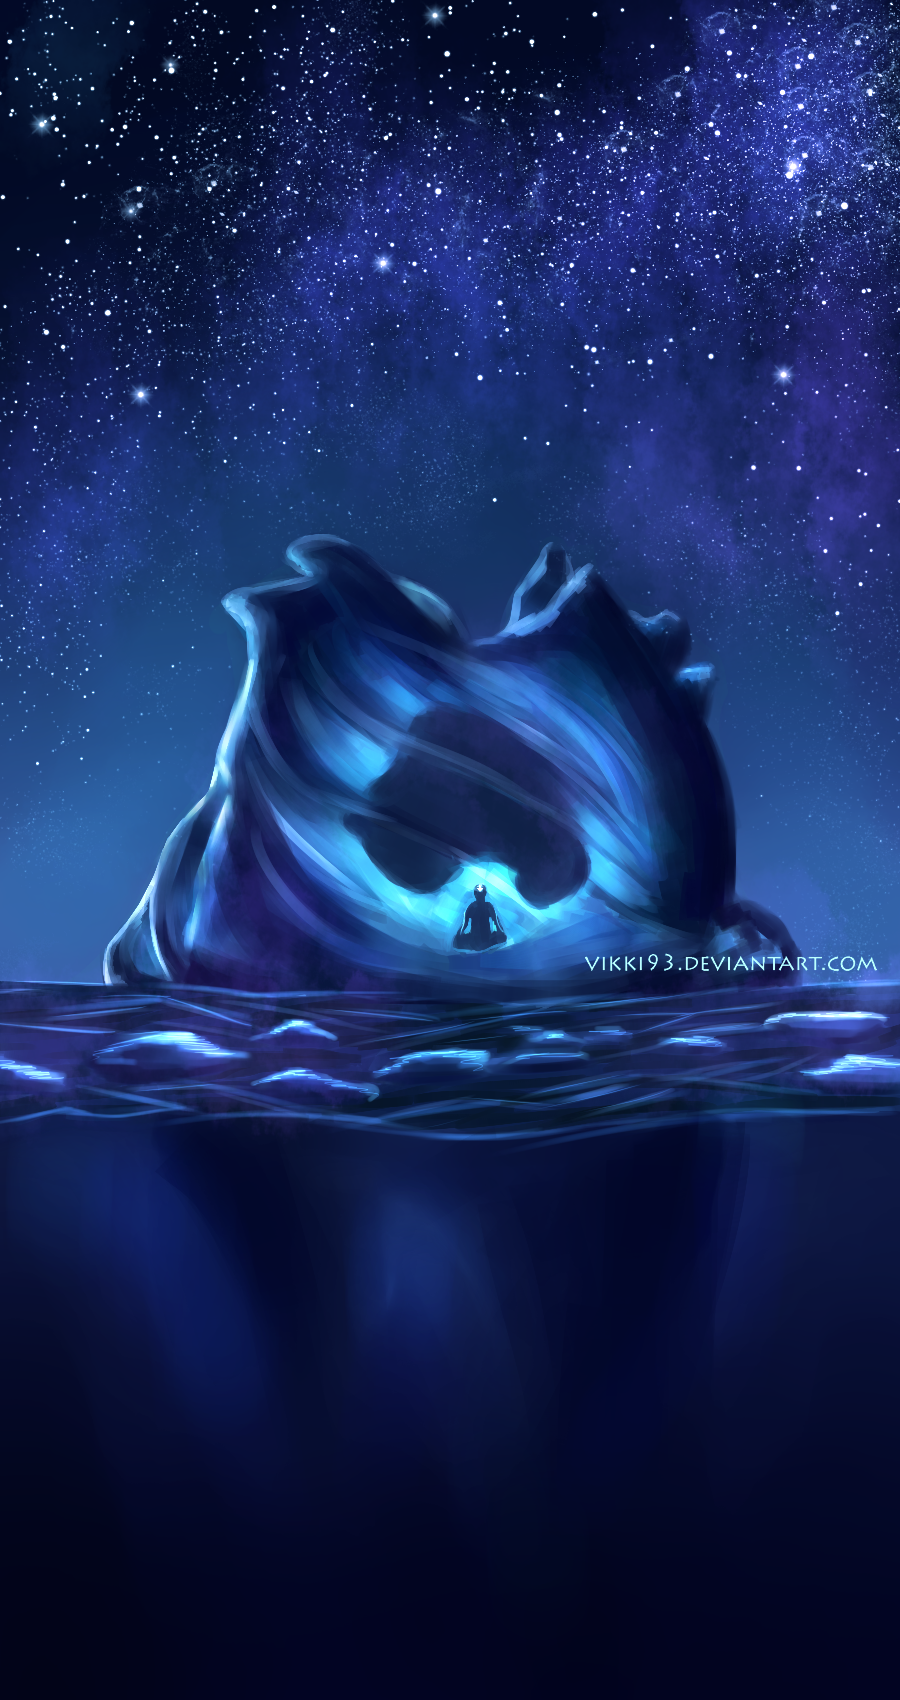 The Boy In The Iceberg Avatar The Last Airbender The Legend